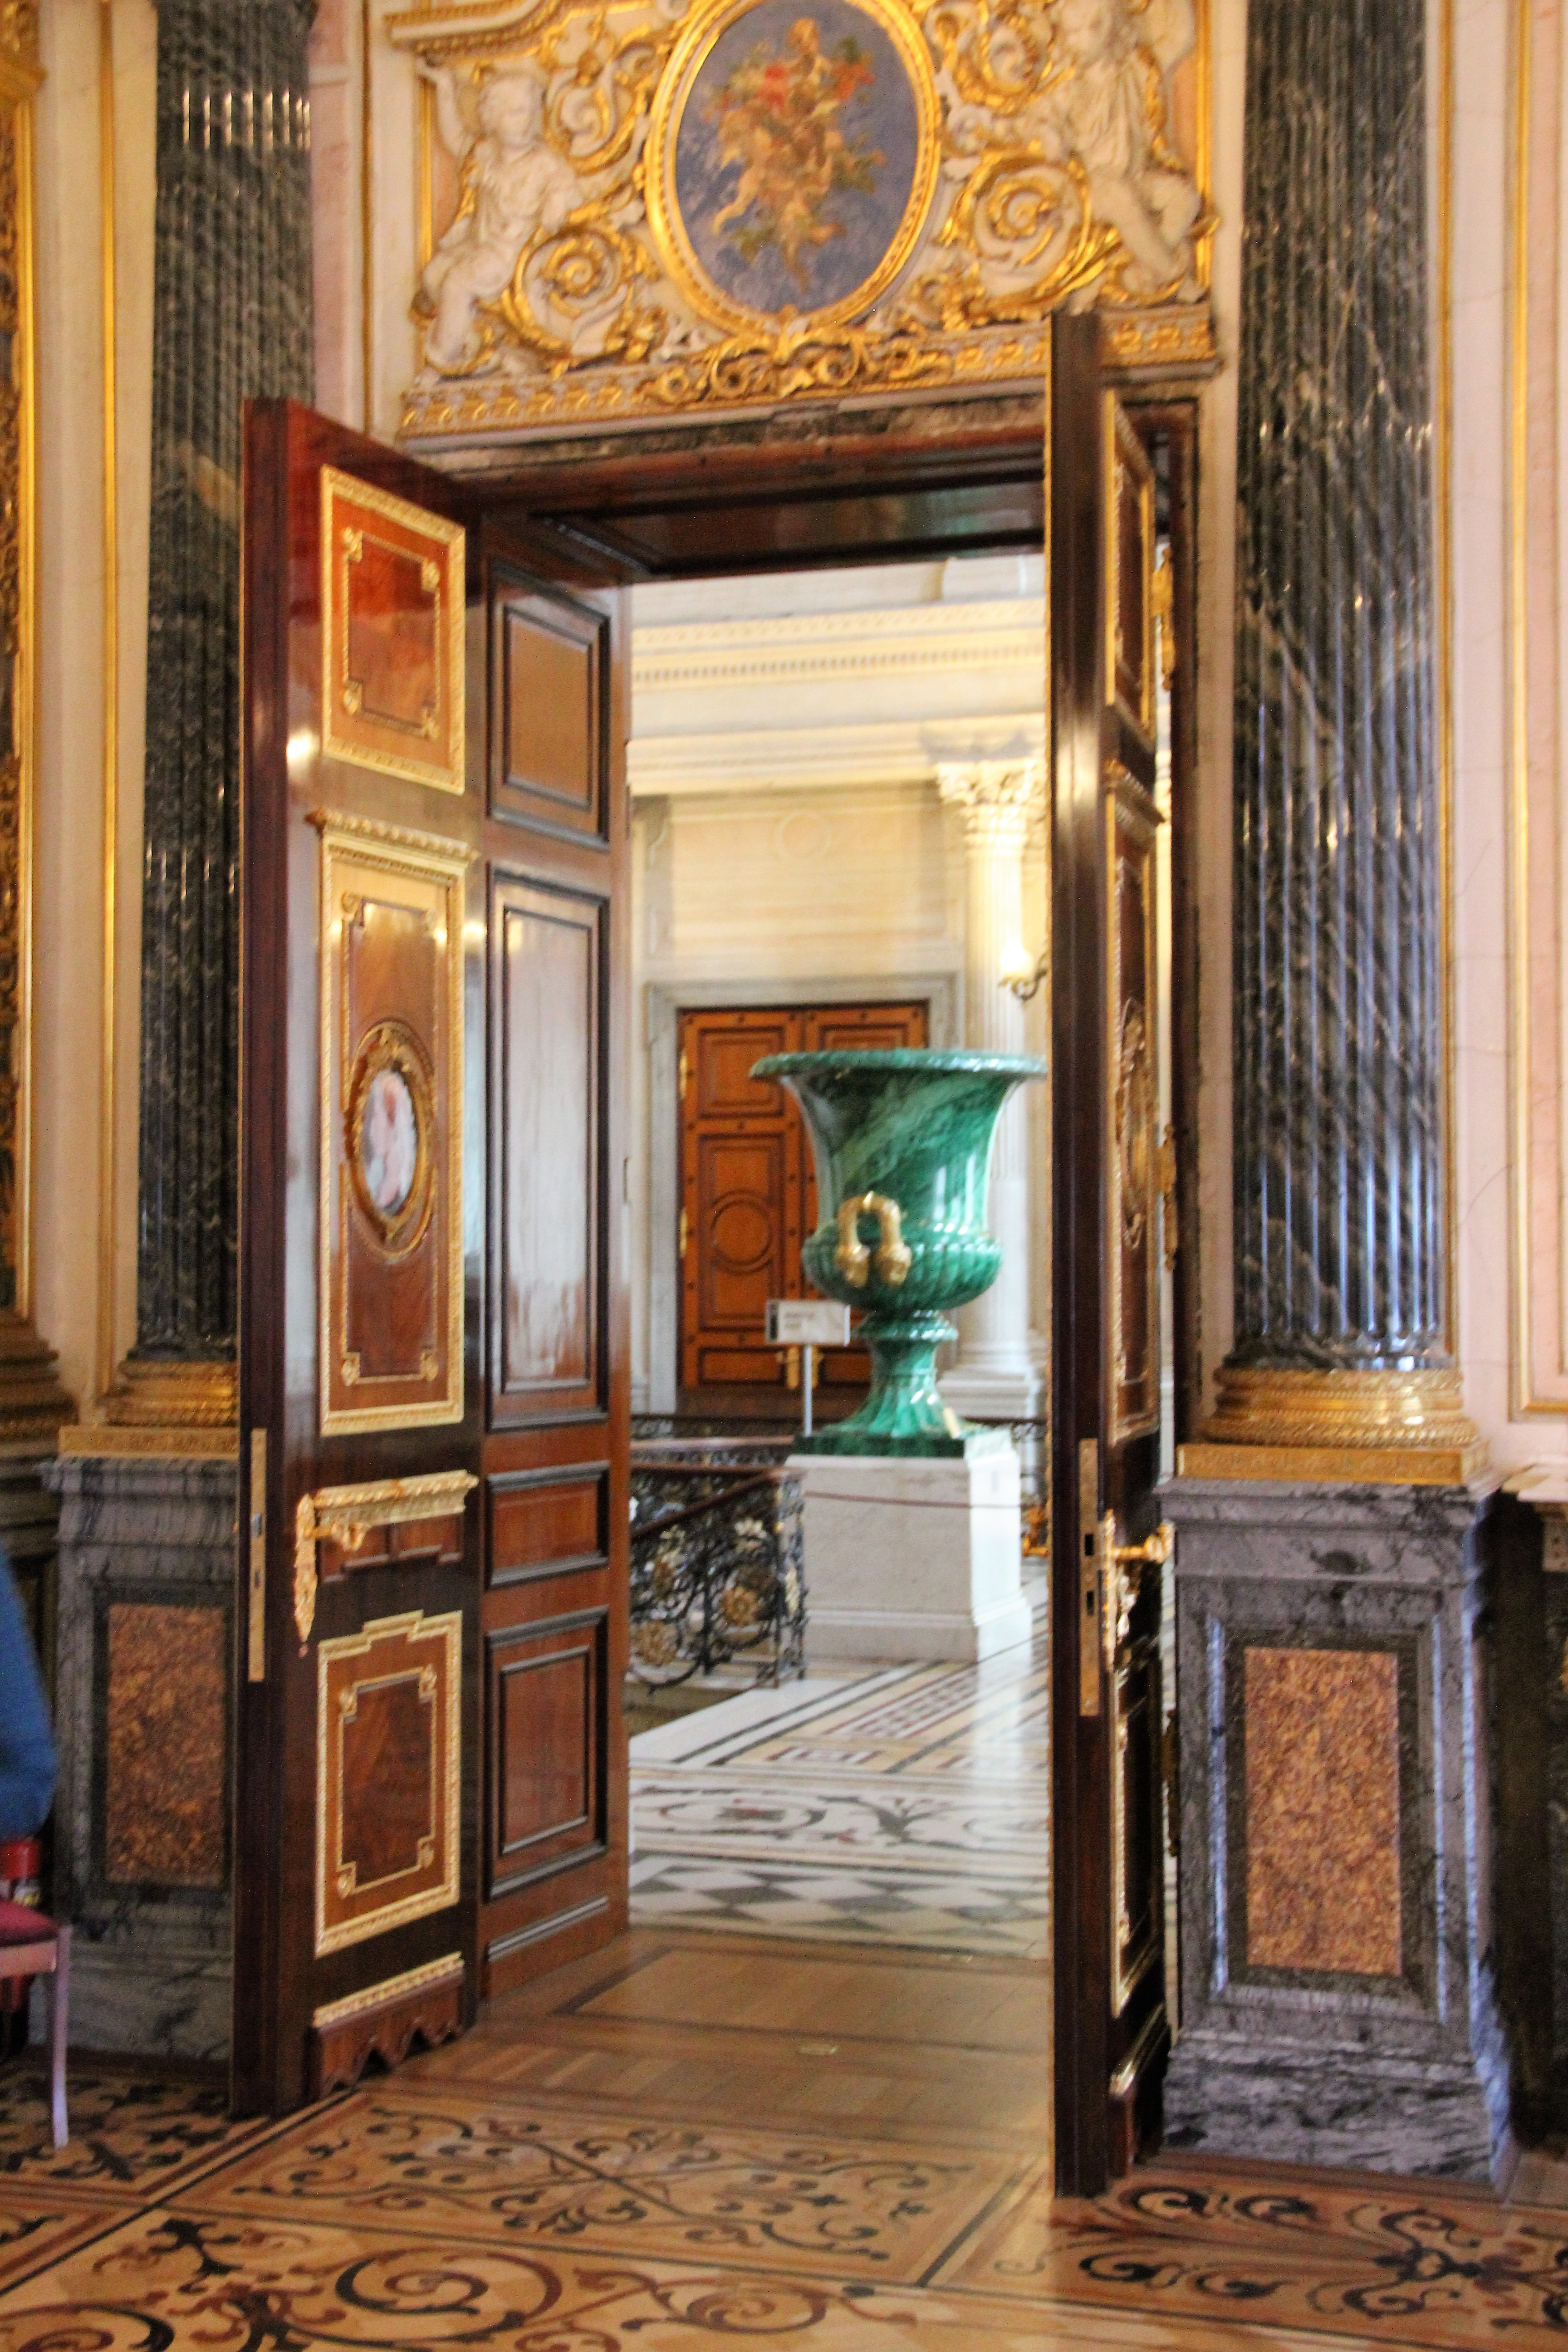 There are so many rooms of treasure in this museum that there are almost endless doors to photograph. I only snapped eight of these doors for this post. & Thursday Doors u2013 October 12 2017 u2013 Hermitage Museum u2013 charlesewaugh pezcame.com